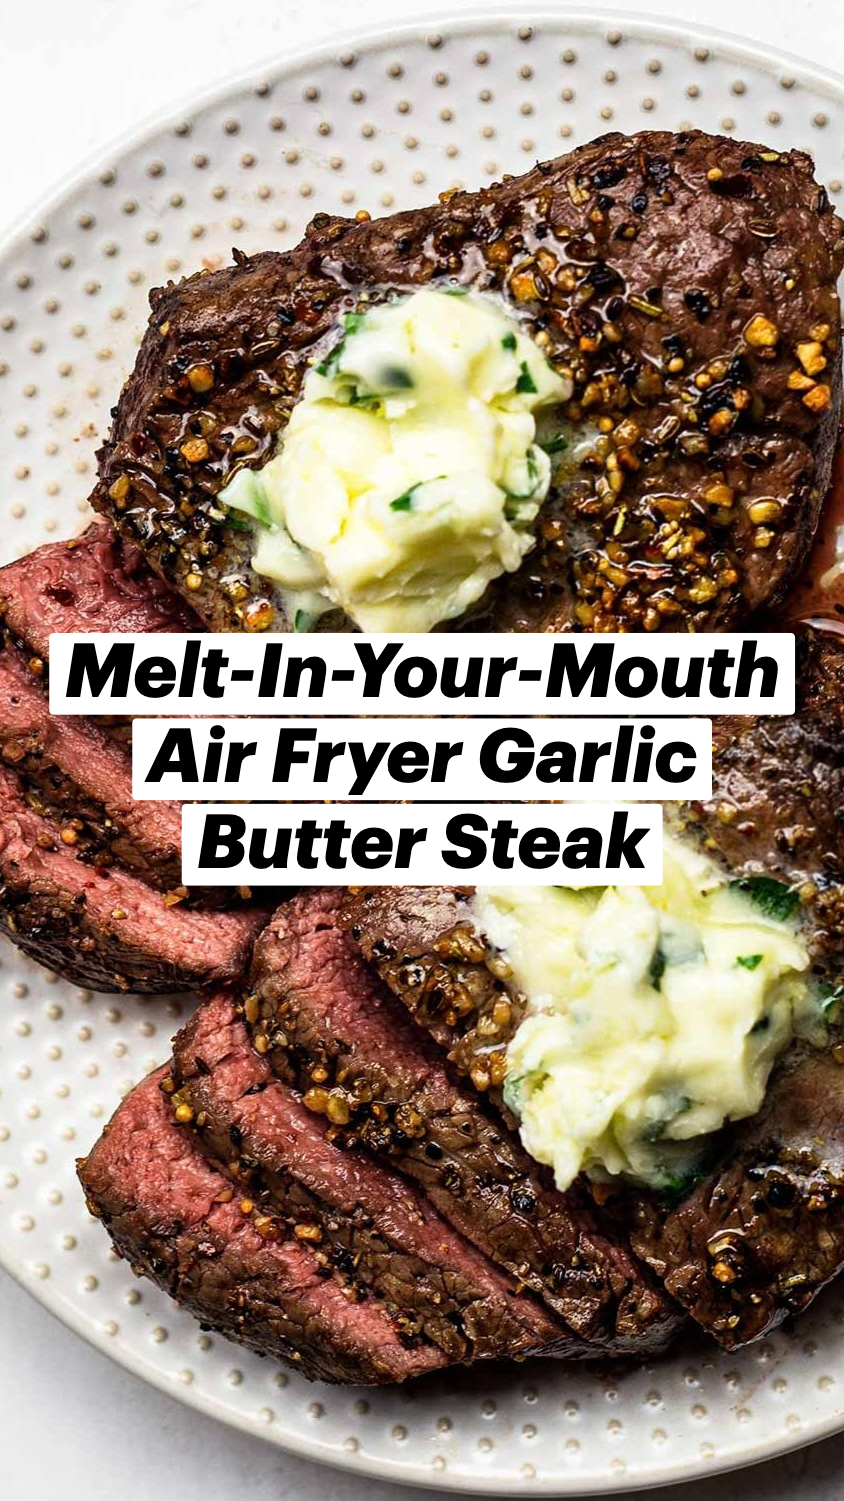 Melt-In-Your-Mouth Air Fryer Garlic Butter Steak